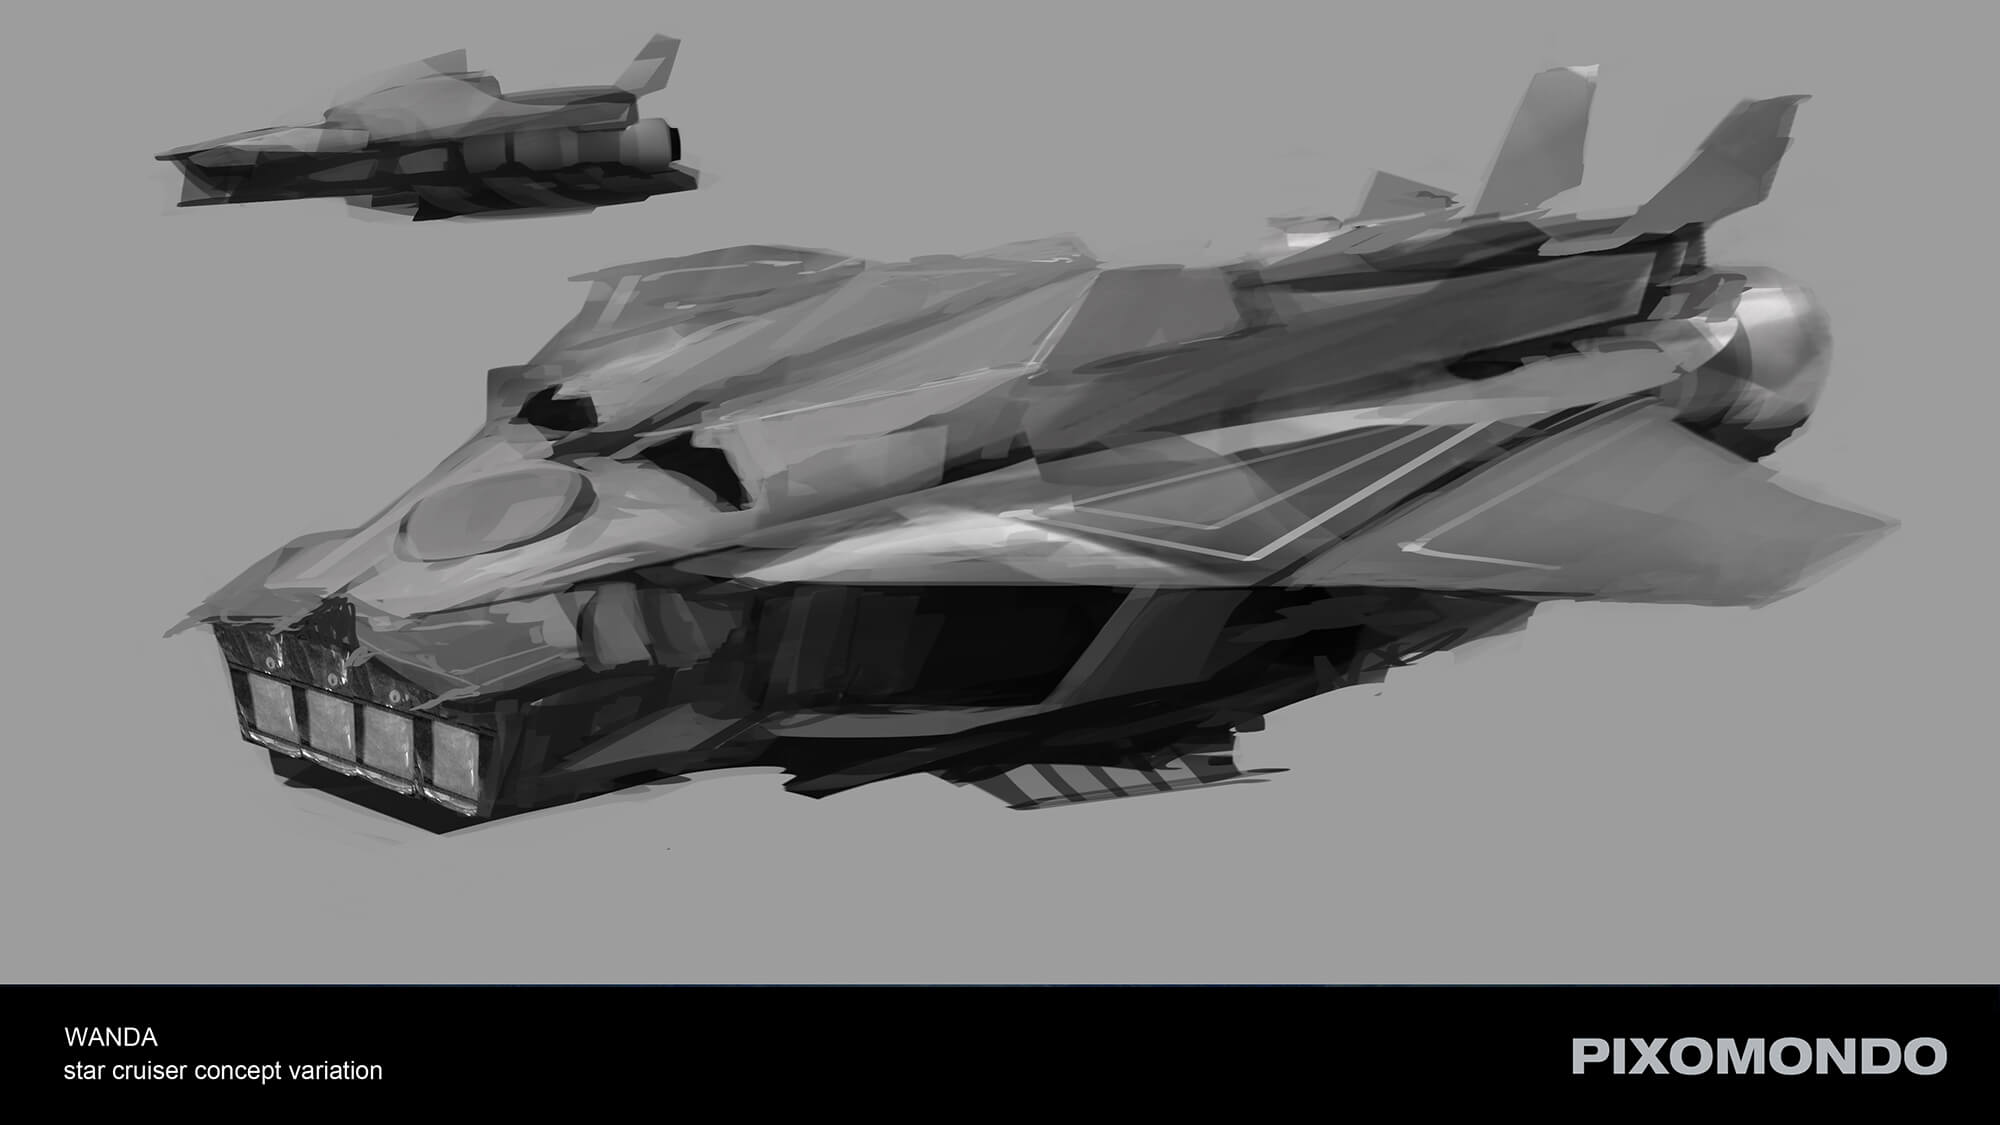 vehicle-concept-wanda-pixomondo-felix-botho-haas-cruiserA-v004b